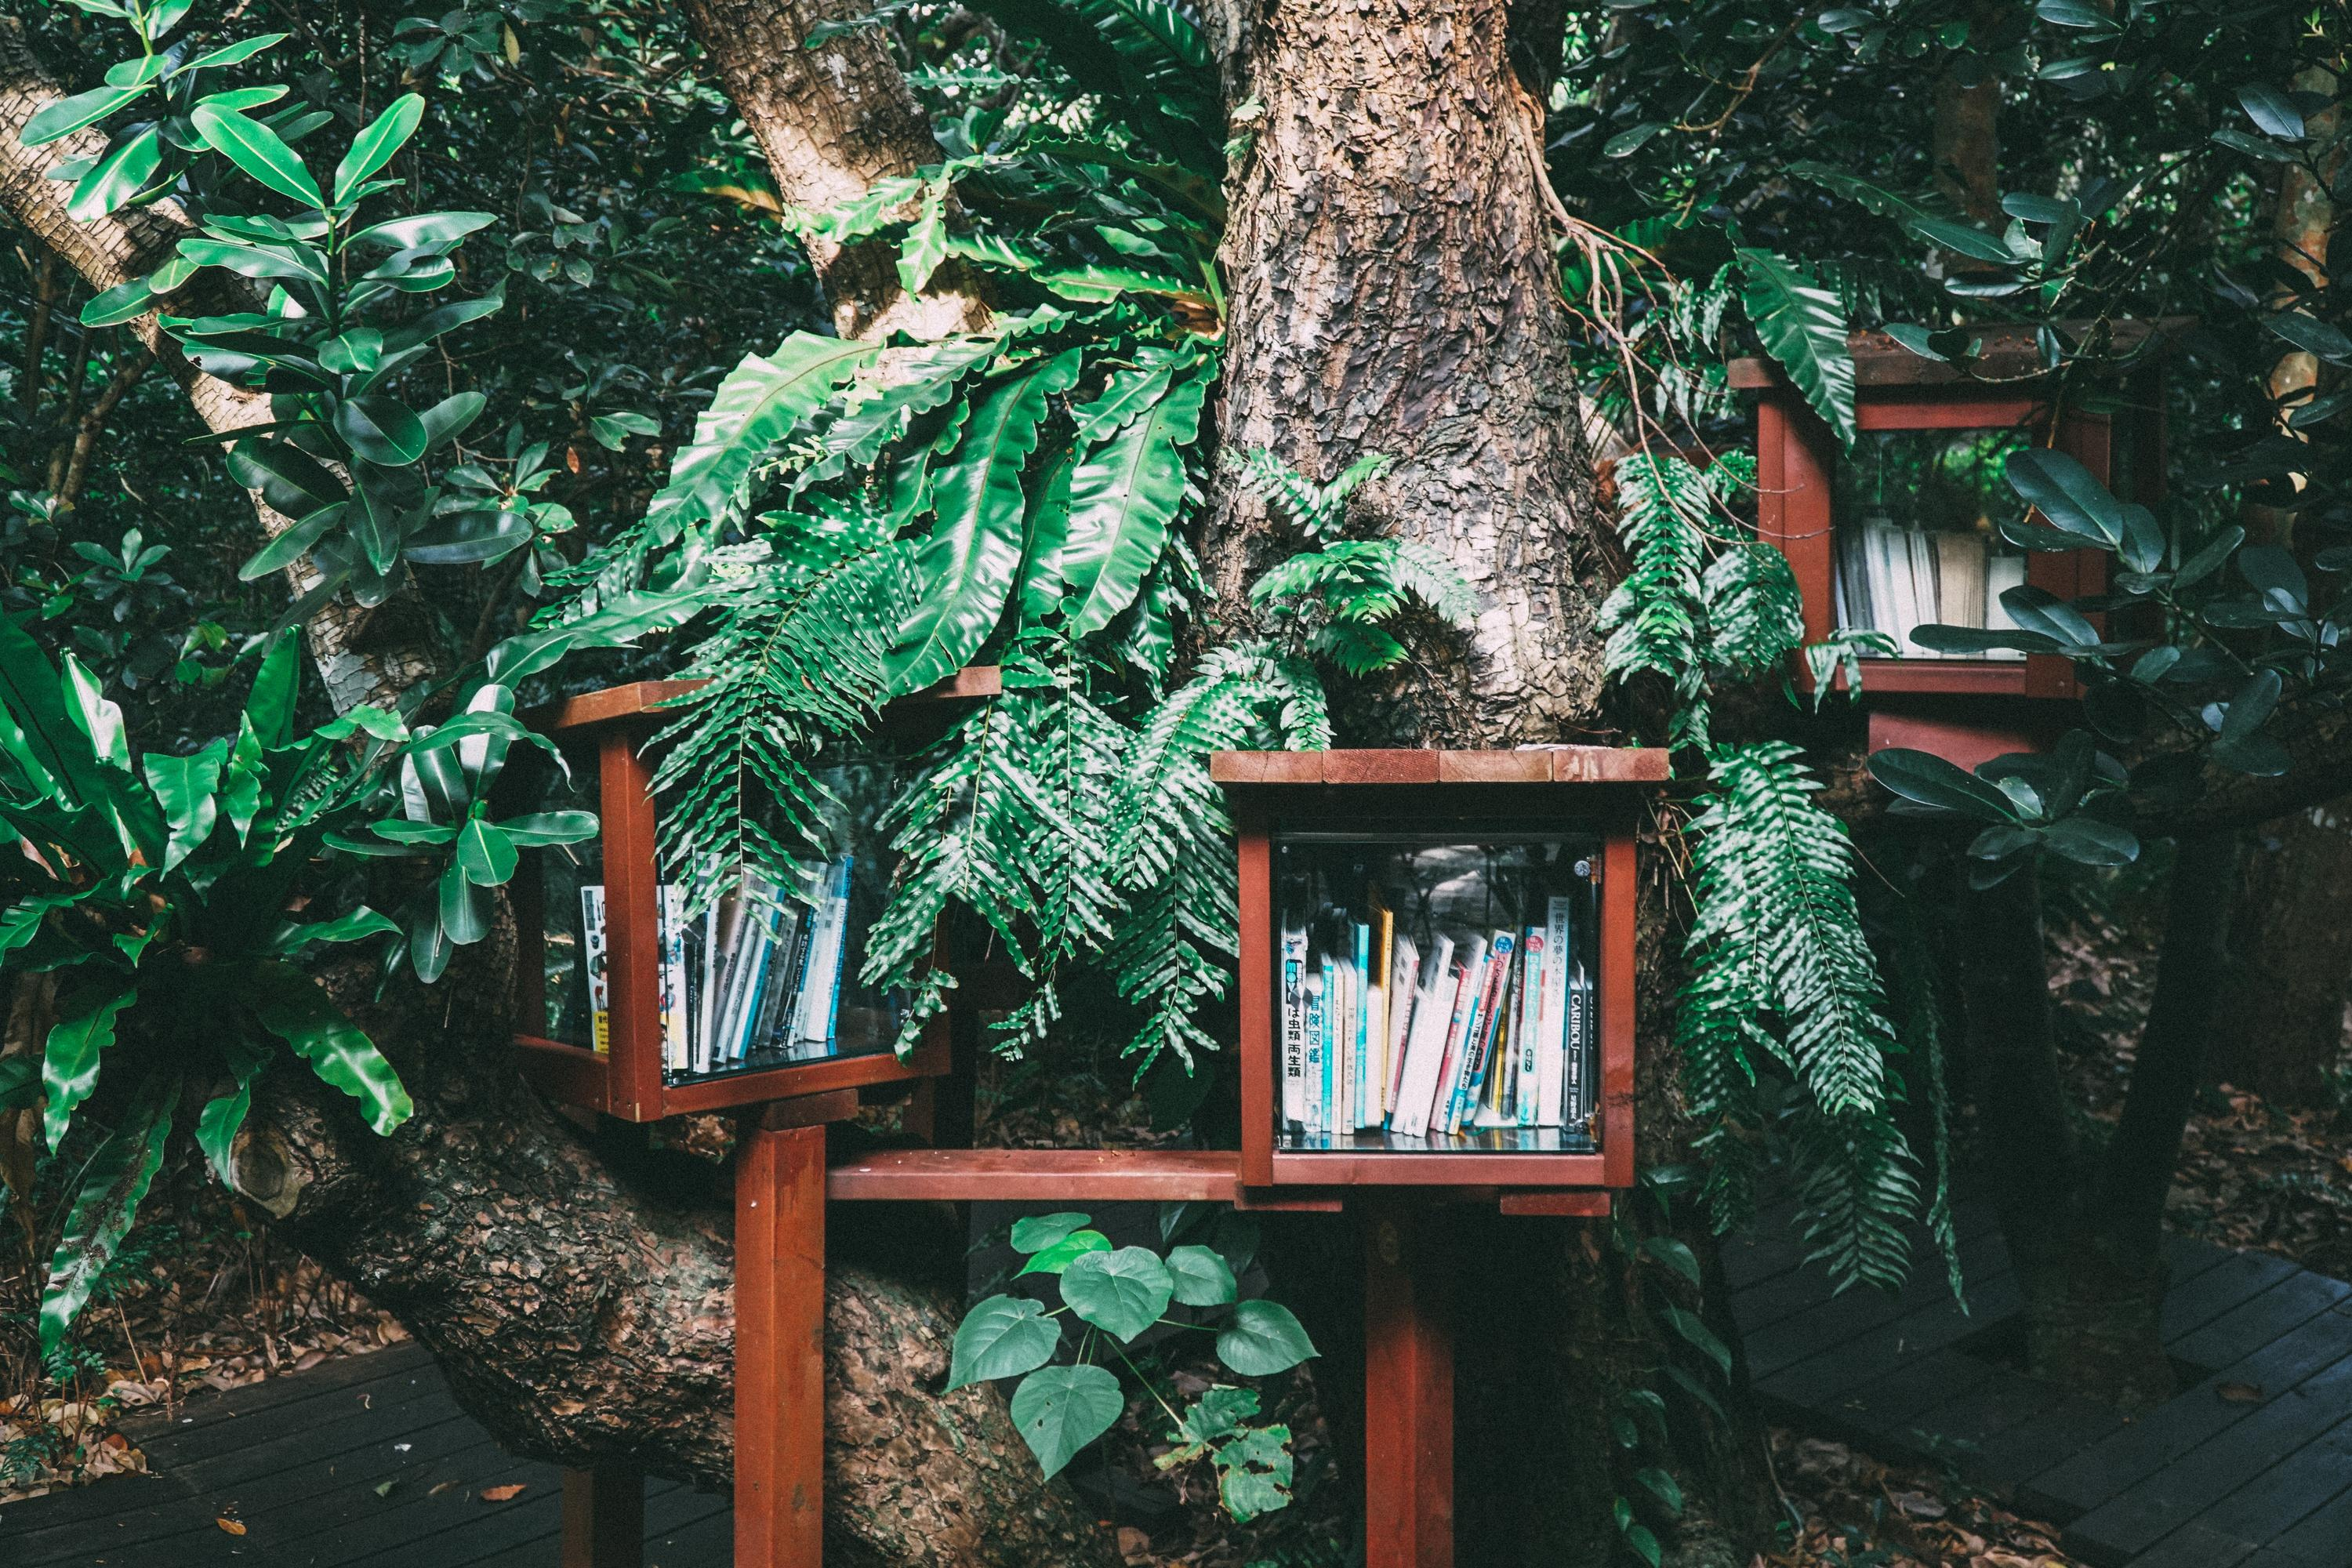 book shelf on a wall surrounded by plants